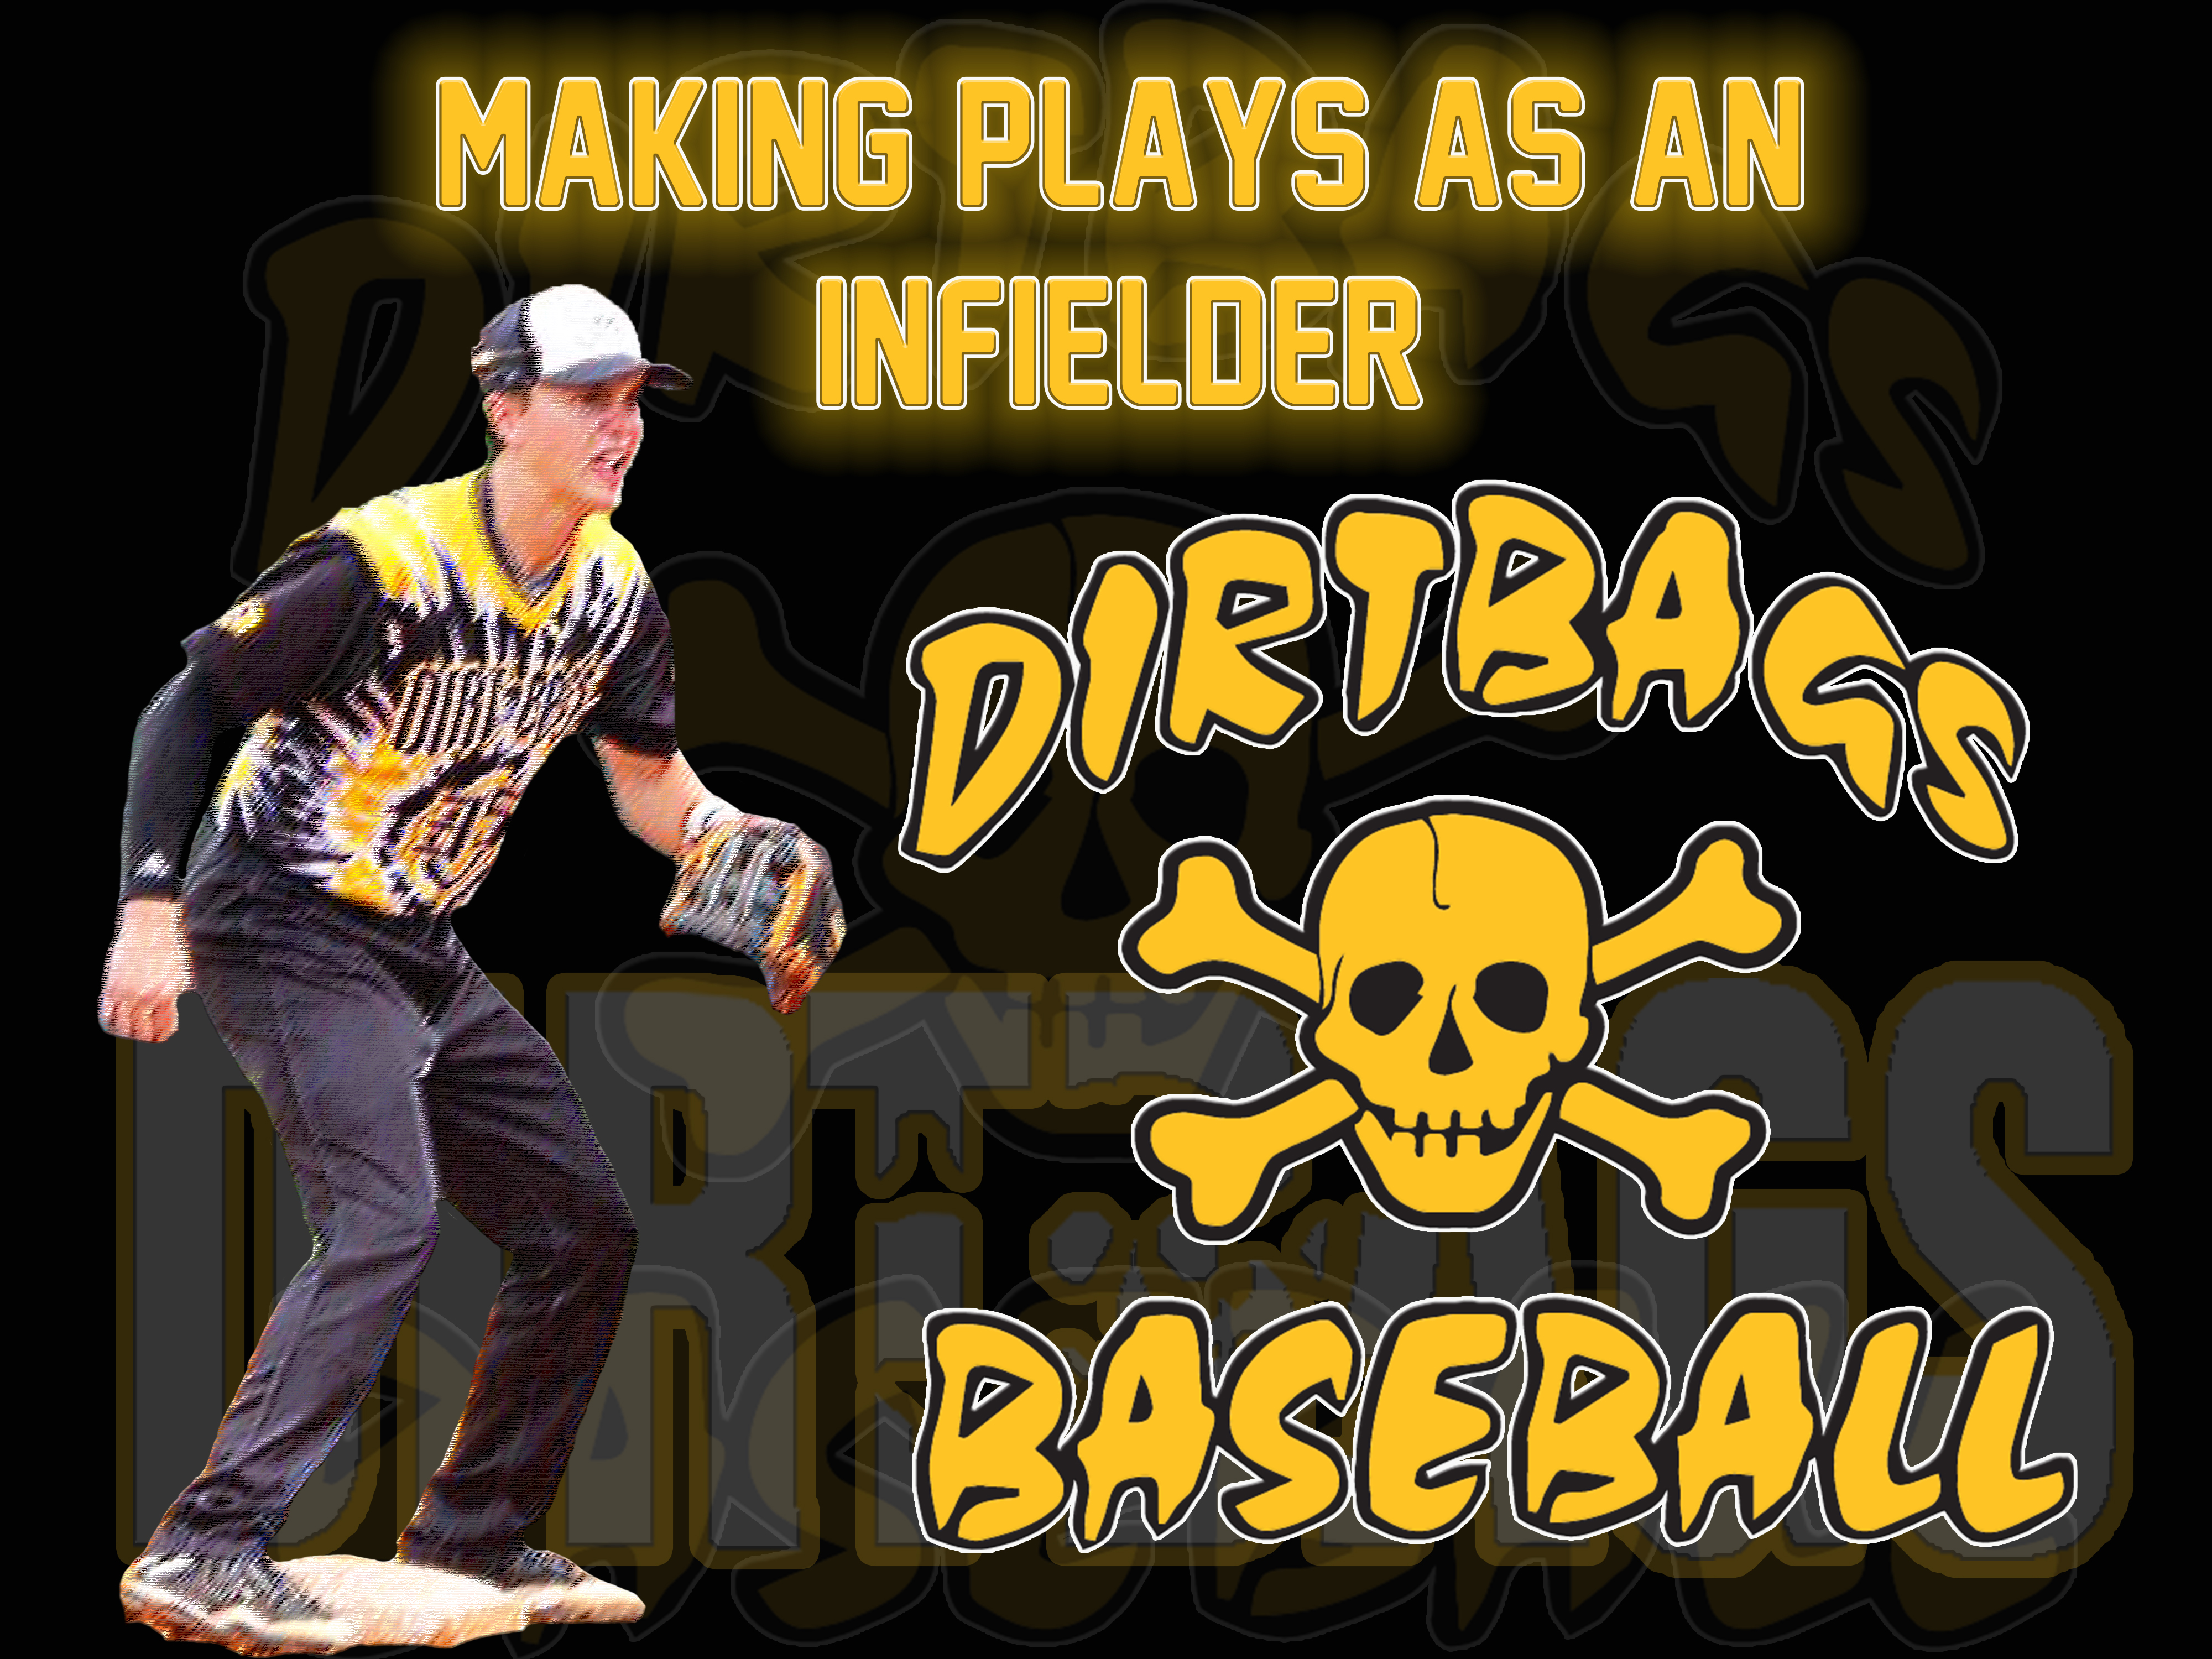 Making Plays As An Infielder